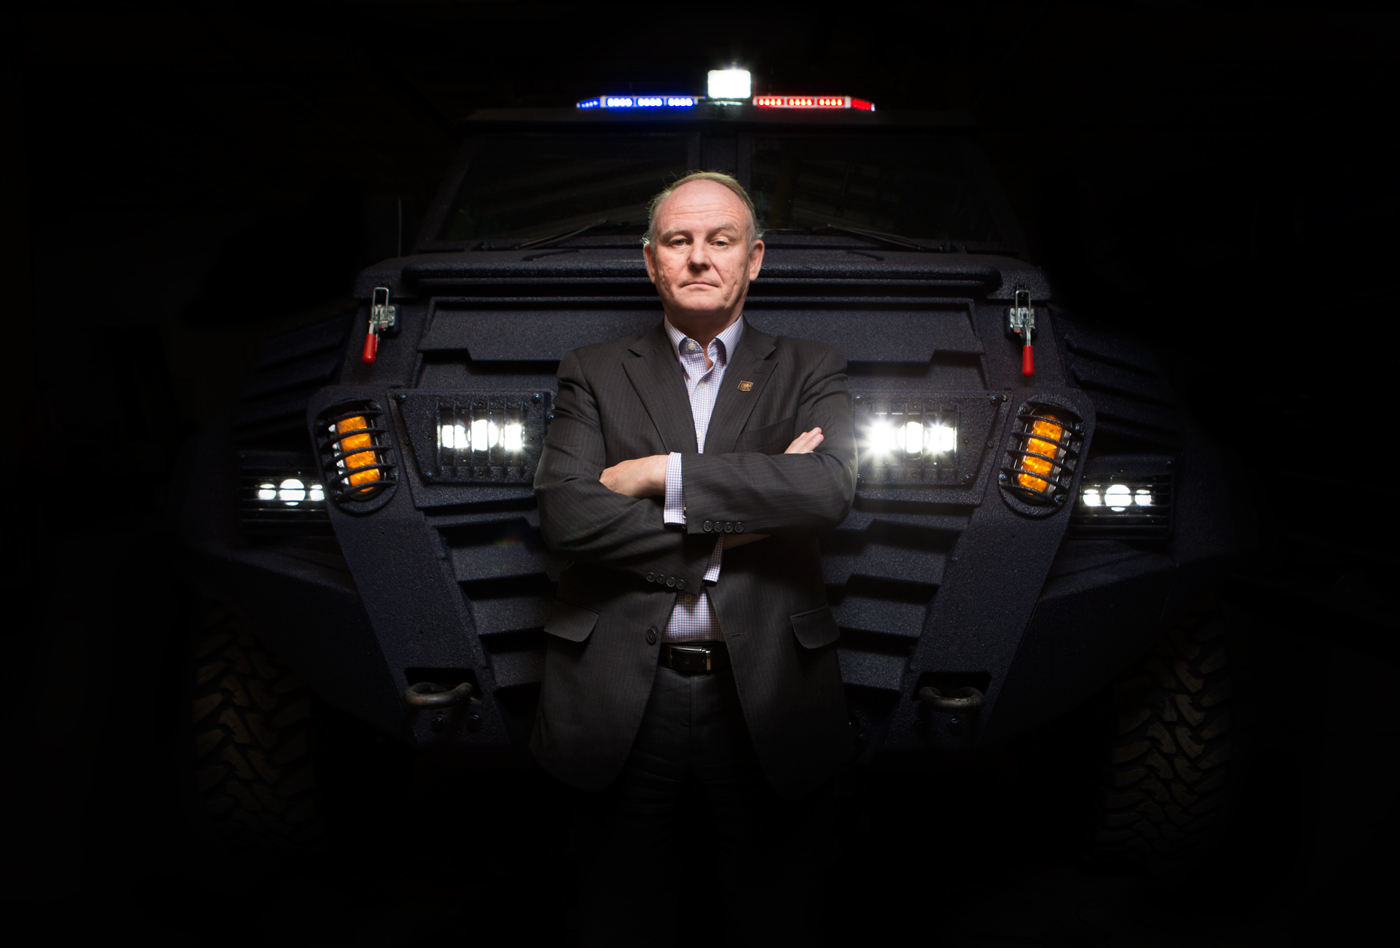 David Fraser, chief operating officer at INKAS Armored Vehicle Manufacturing, for Manufacturing Automation magazine.